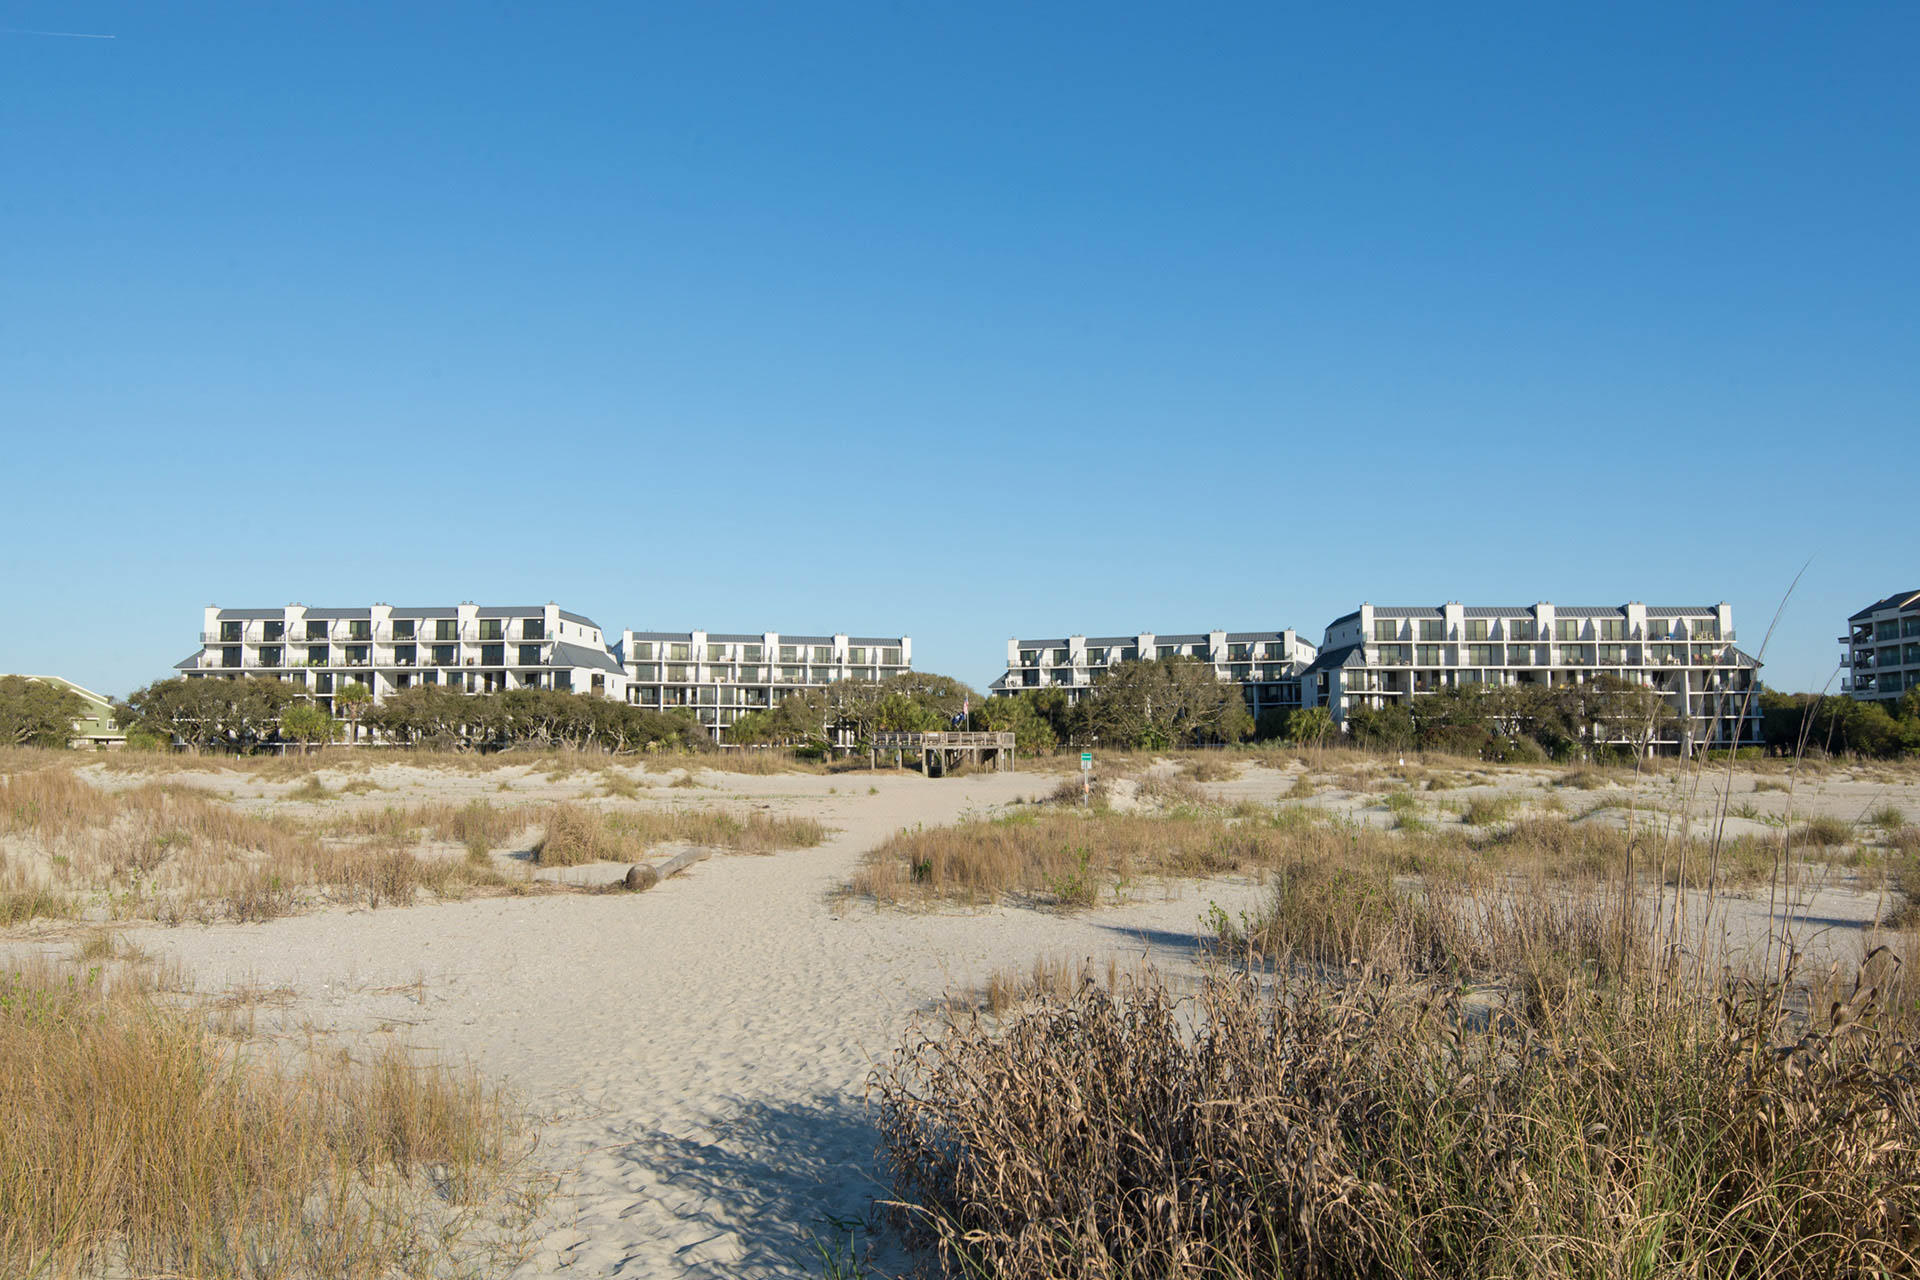 322-D Shipwatch Isle Of Palms, SC 29451